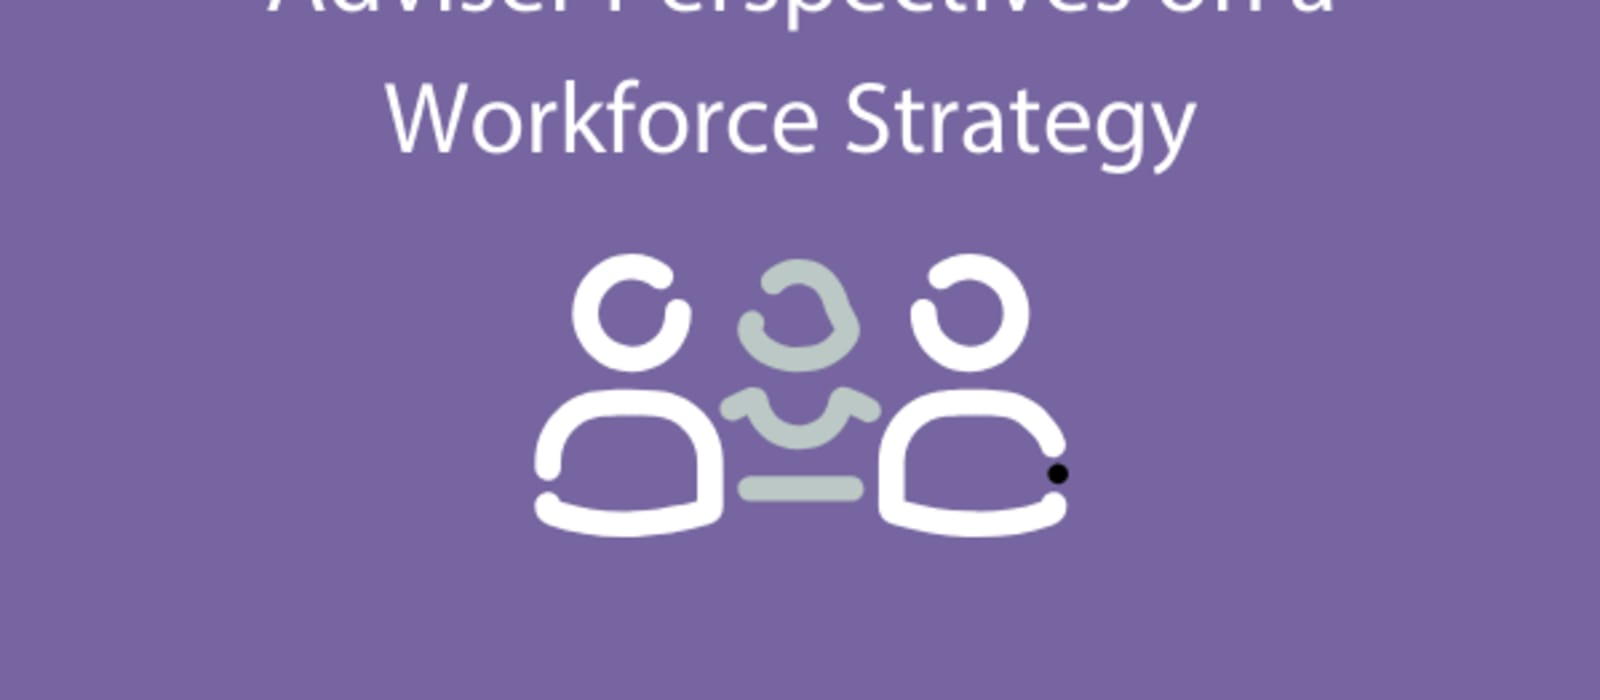 Adviser Perspectives on a Workforce Strategy